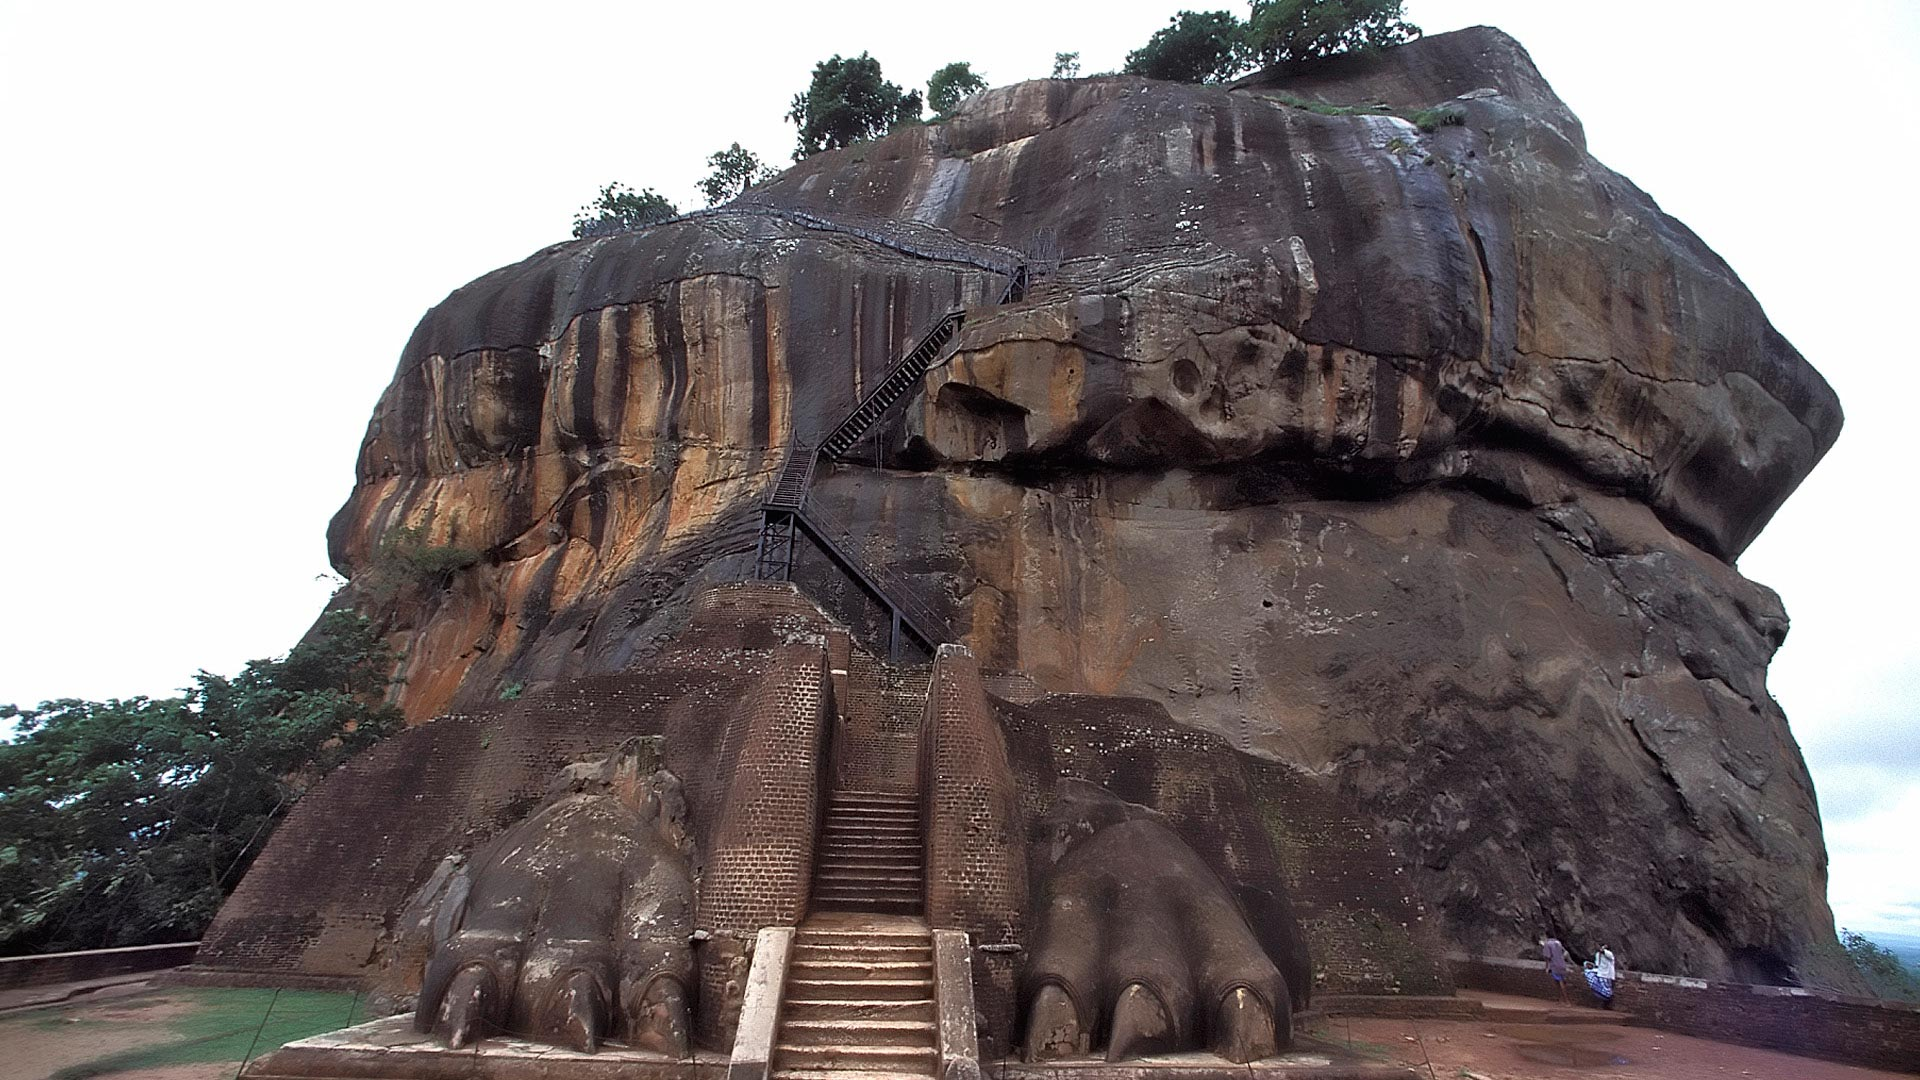 Lion platform, Sigiriya, North Central Province, Sri Lanka